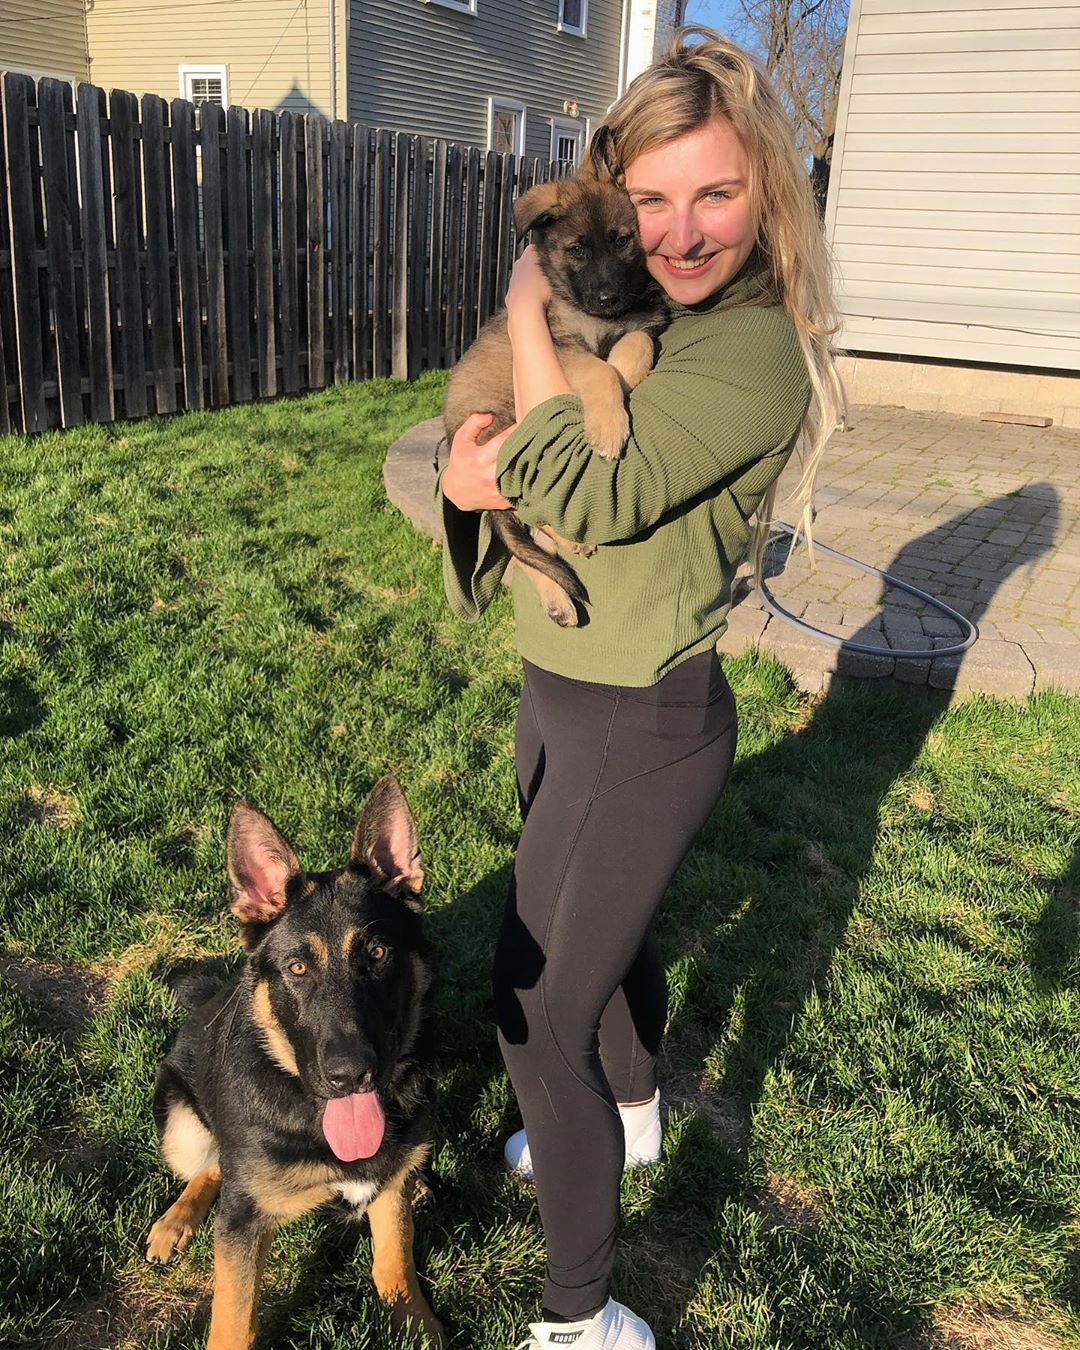 kate and dogs